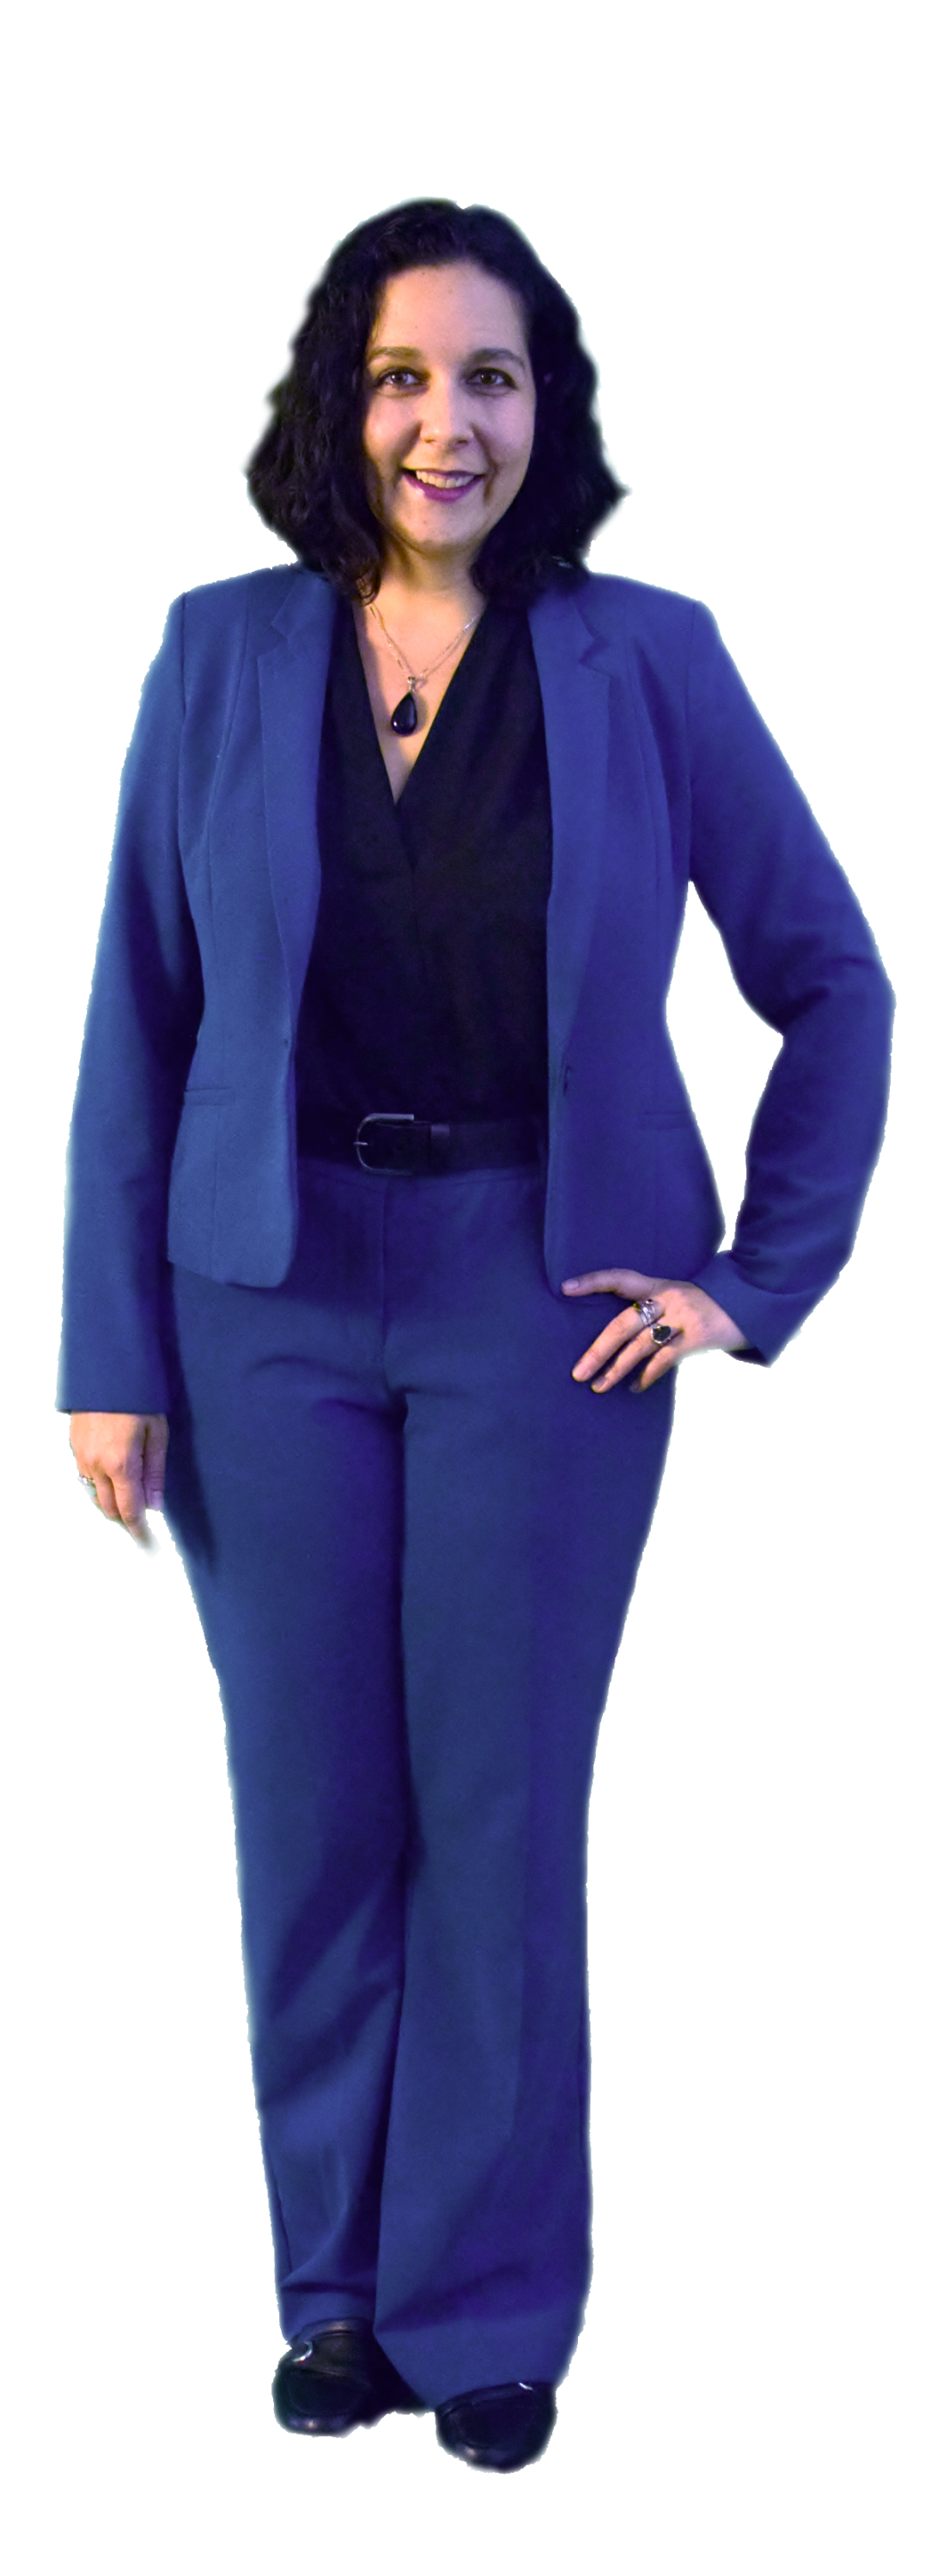 Leigh Chandler in a blue suit